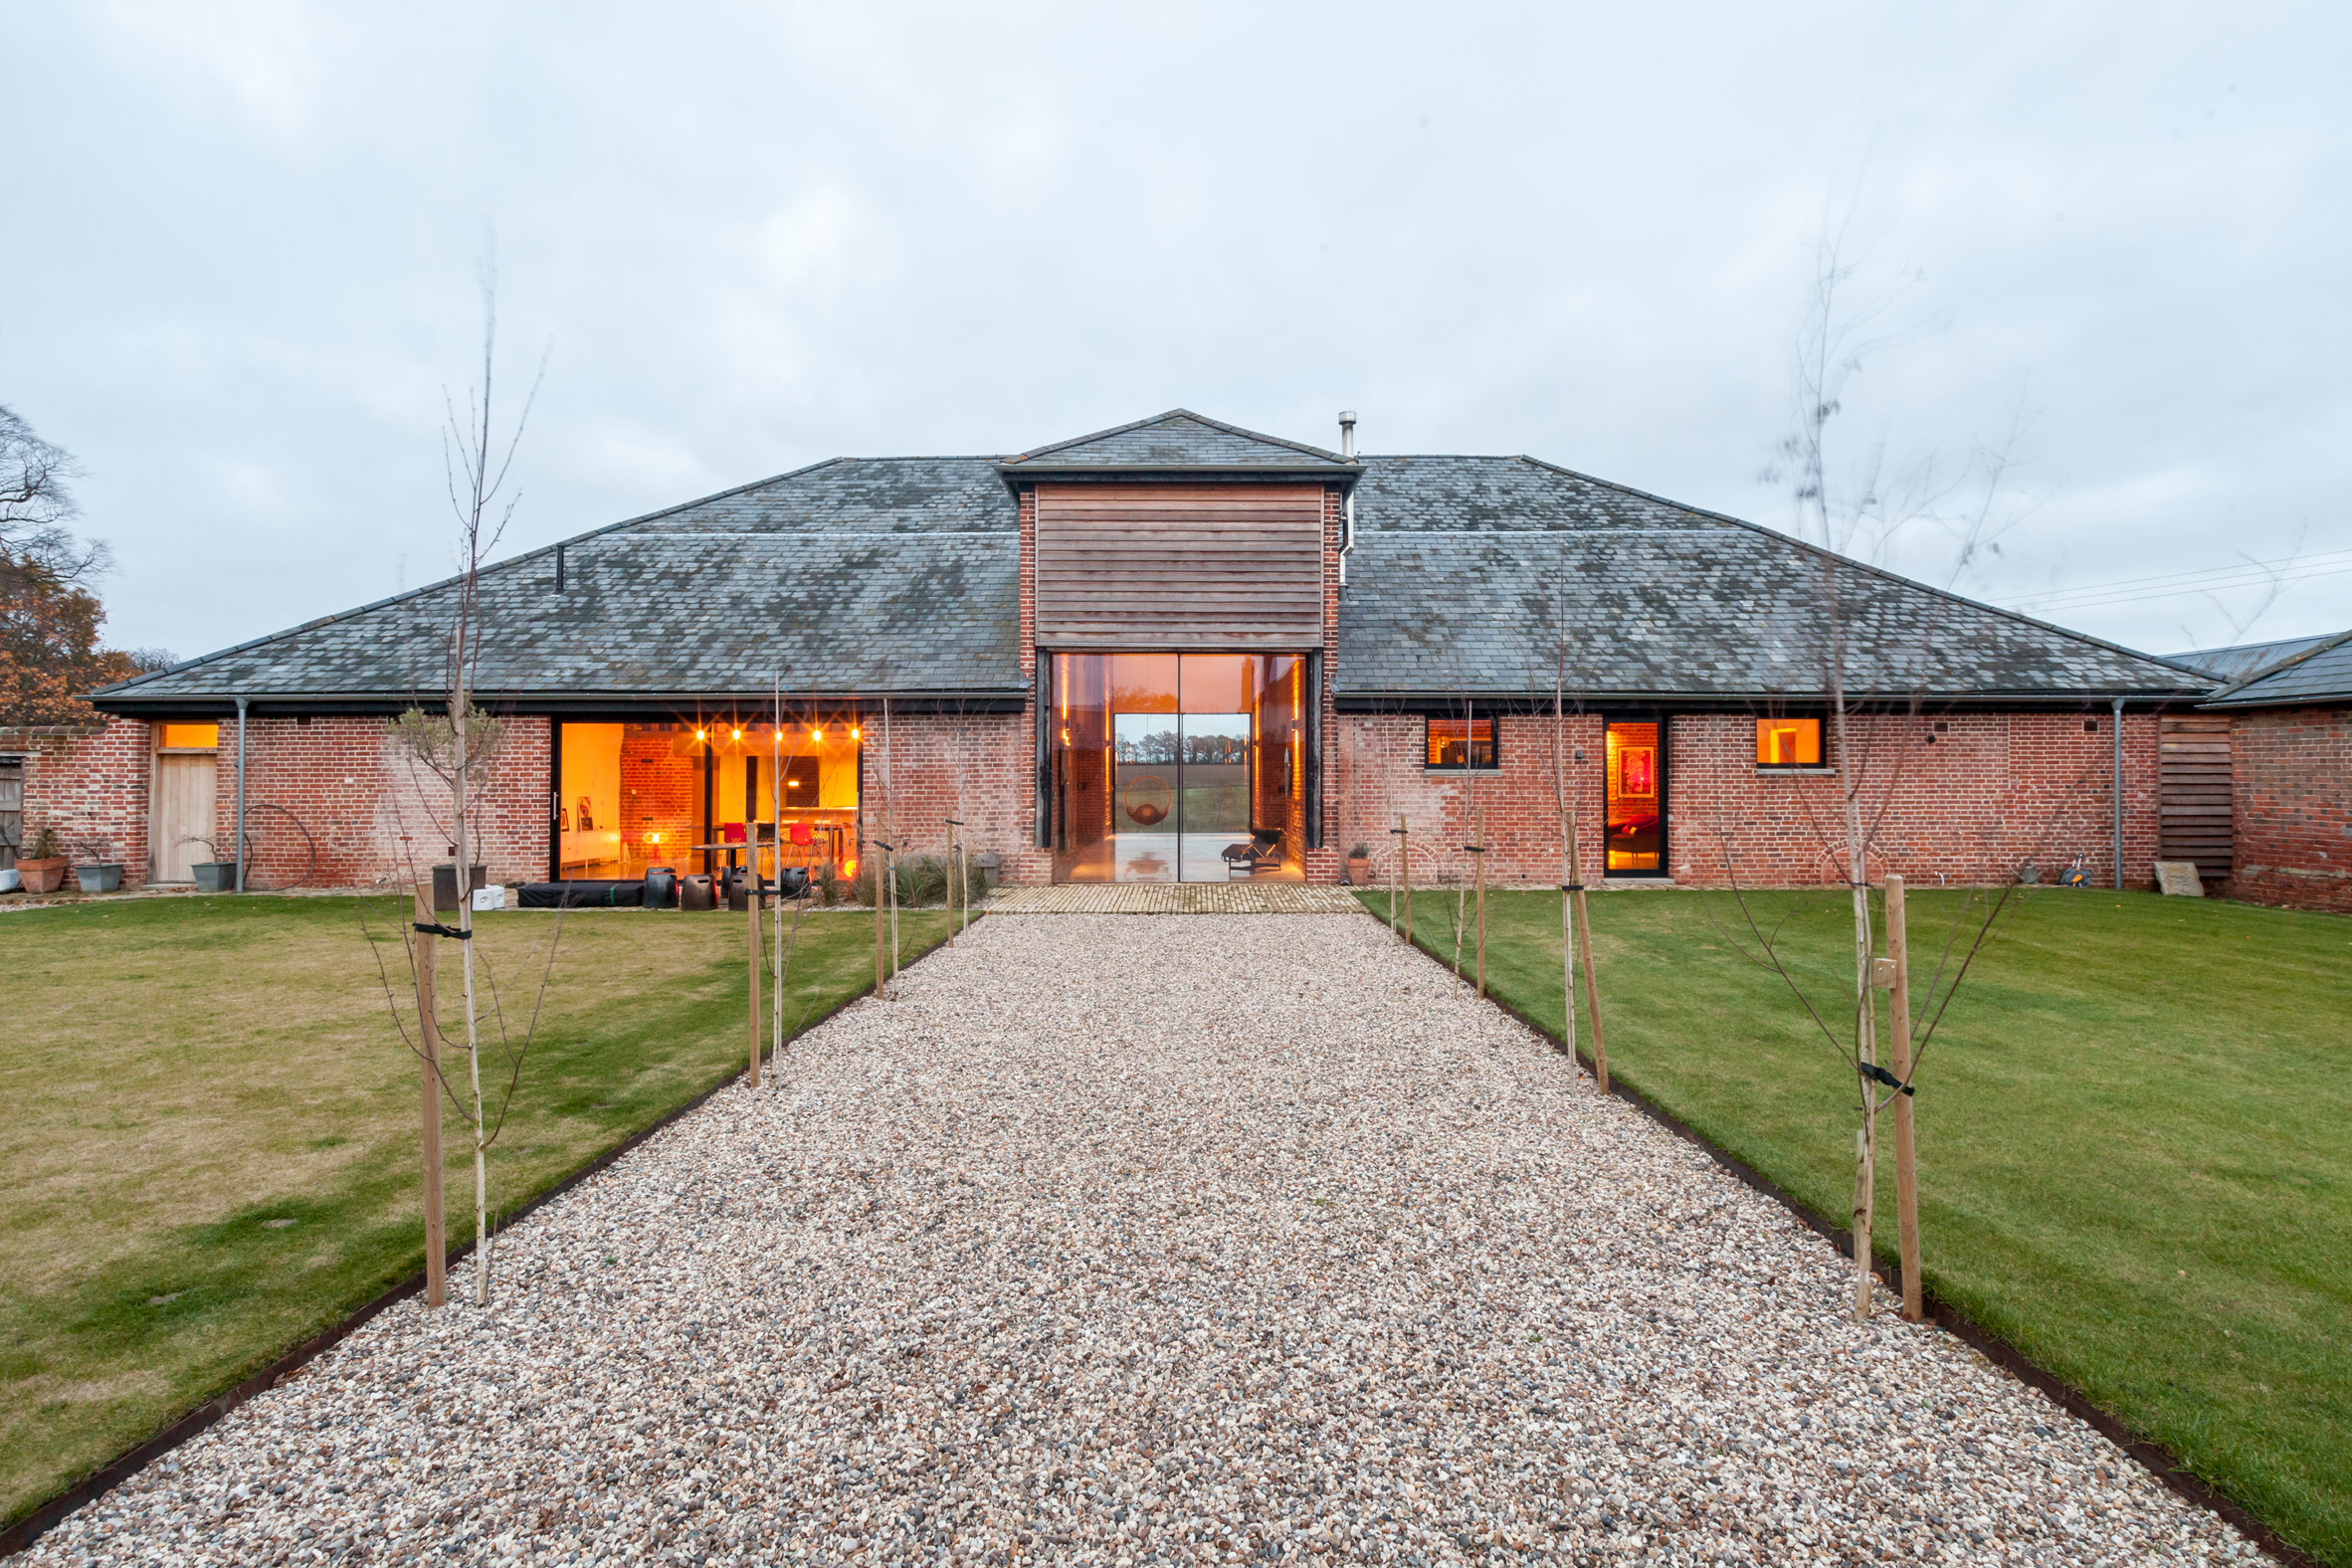 David Nossiter Architects transforms brick barn in Suffolk into spacious home